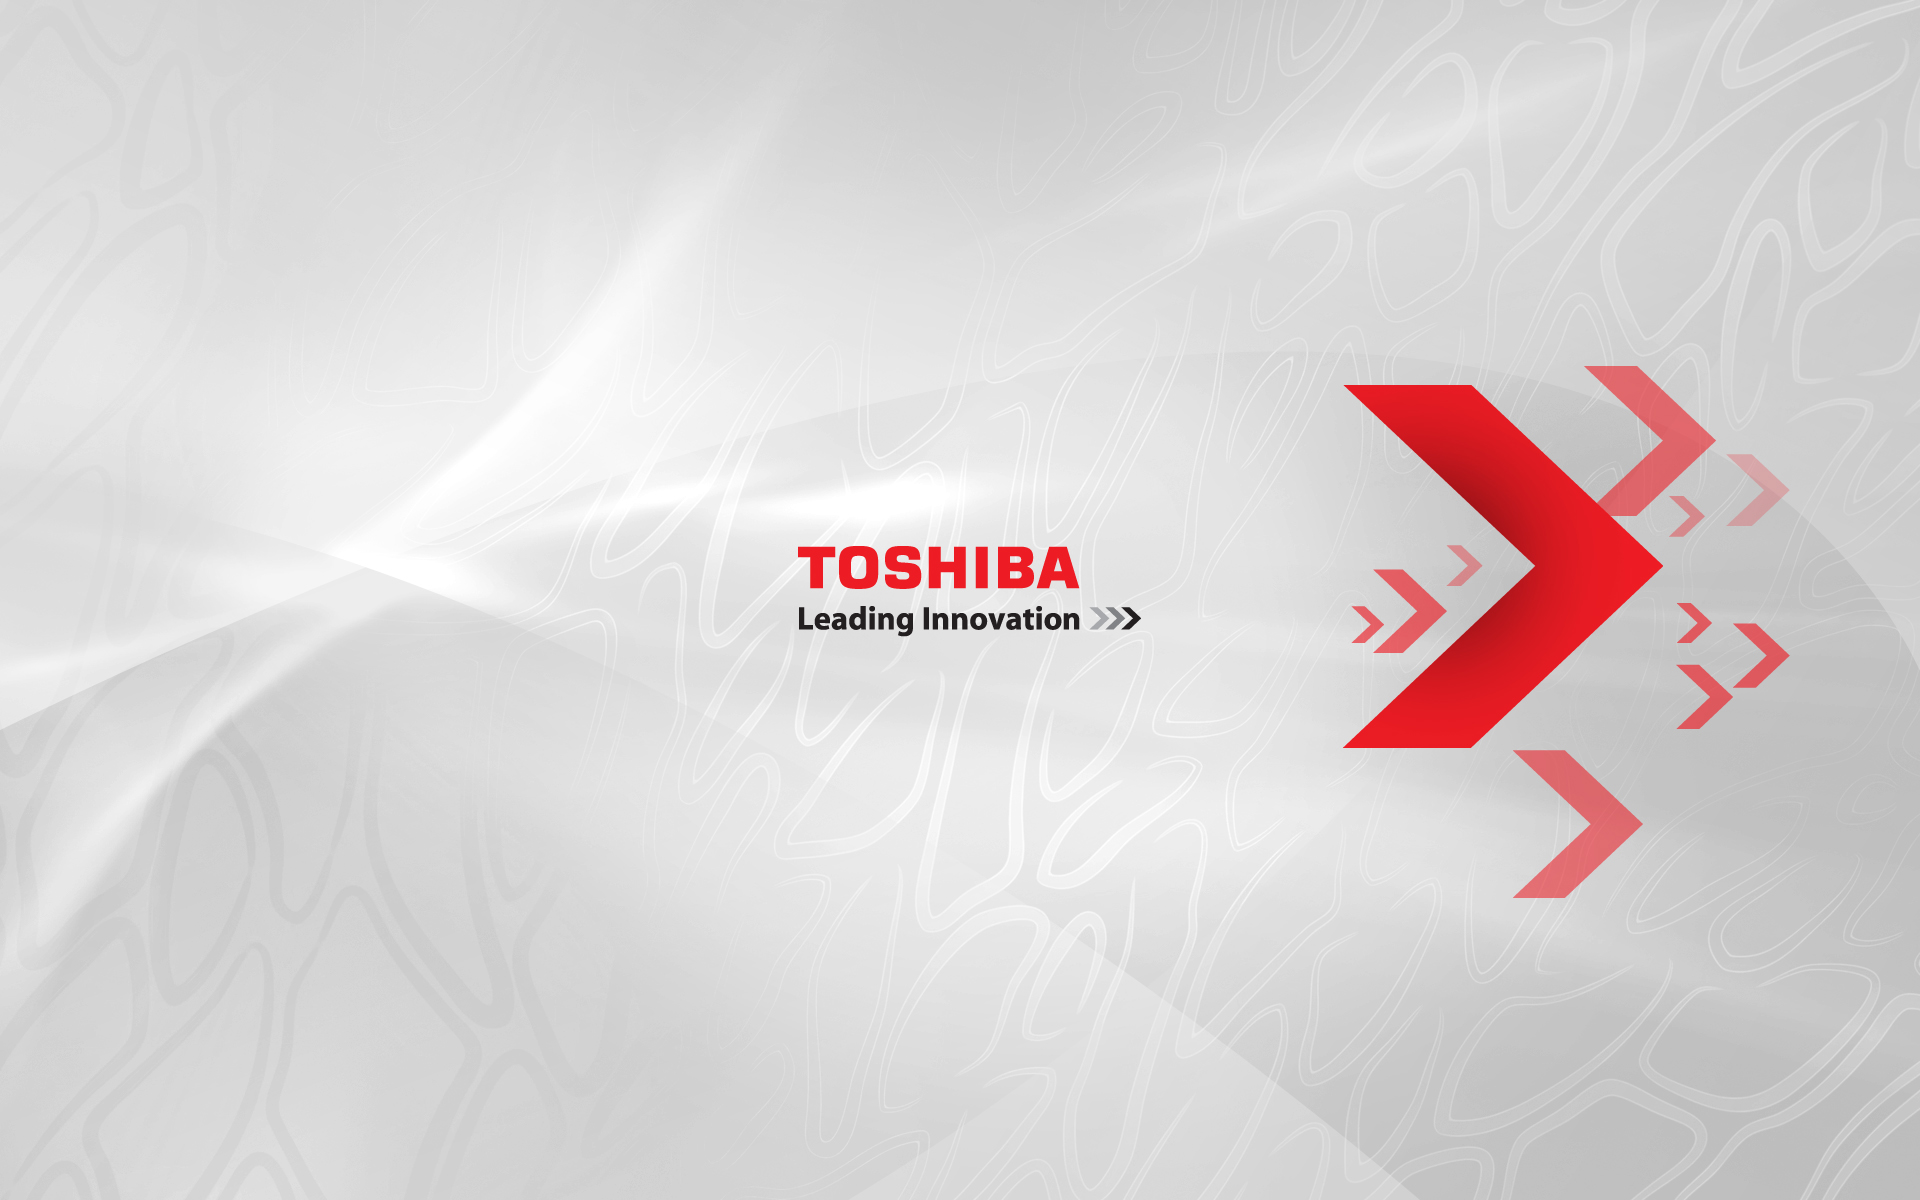 Toshiba Wallpapers, High Definition Wallpapers